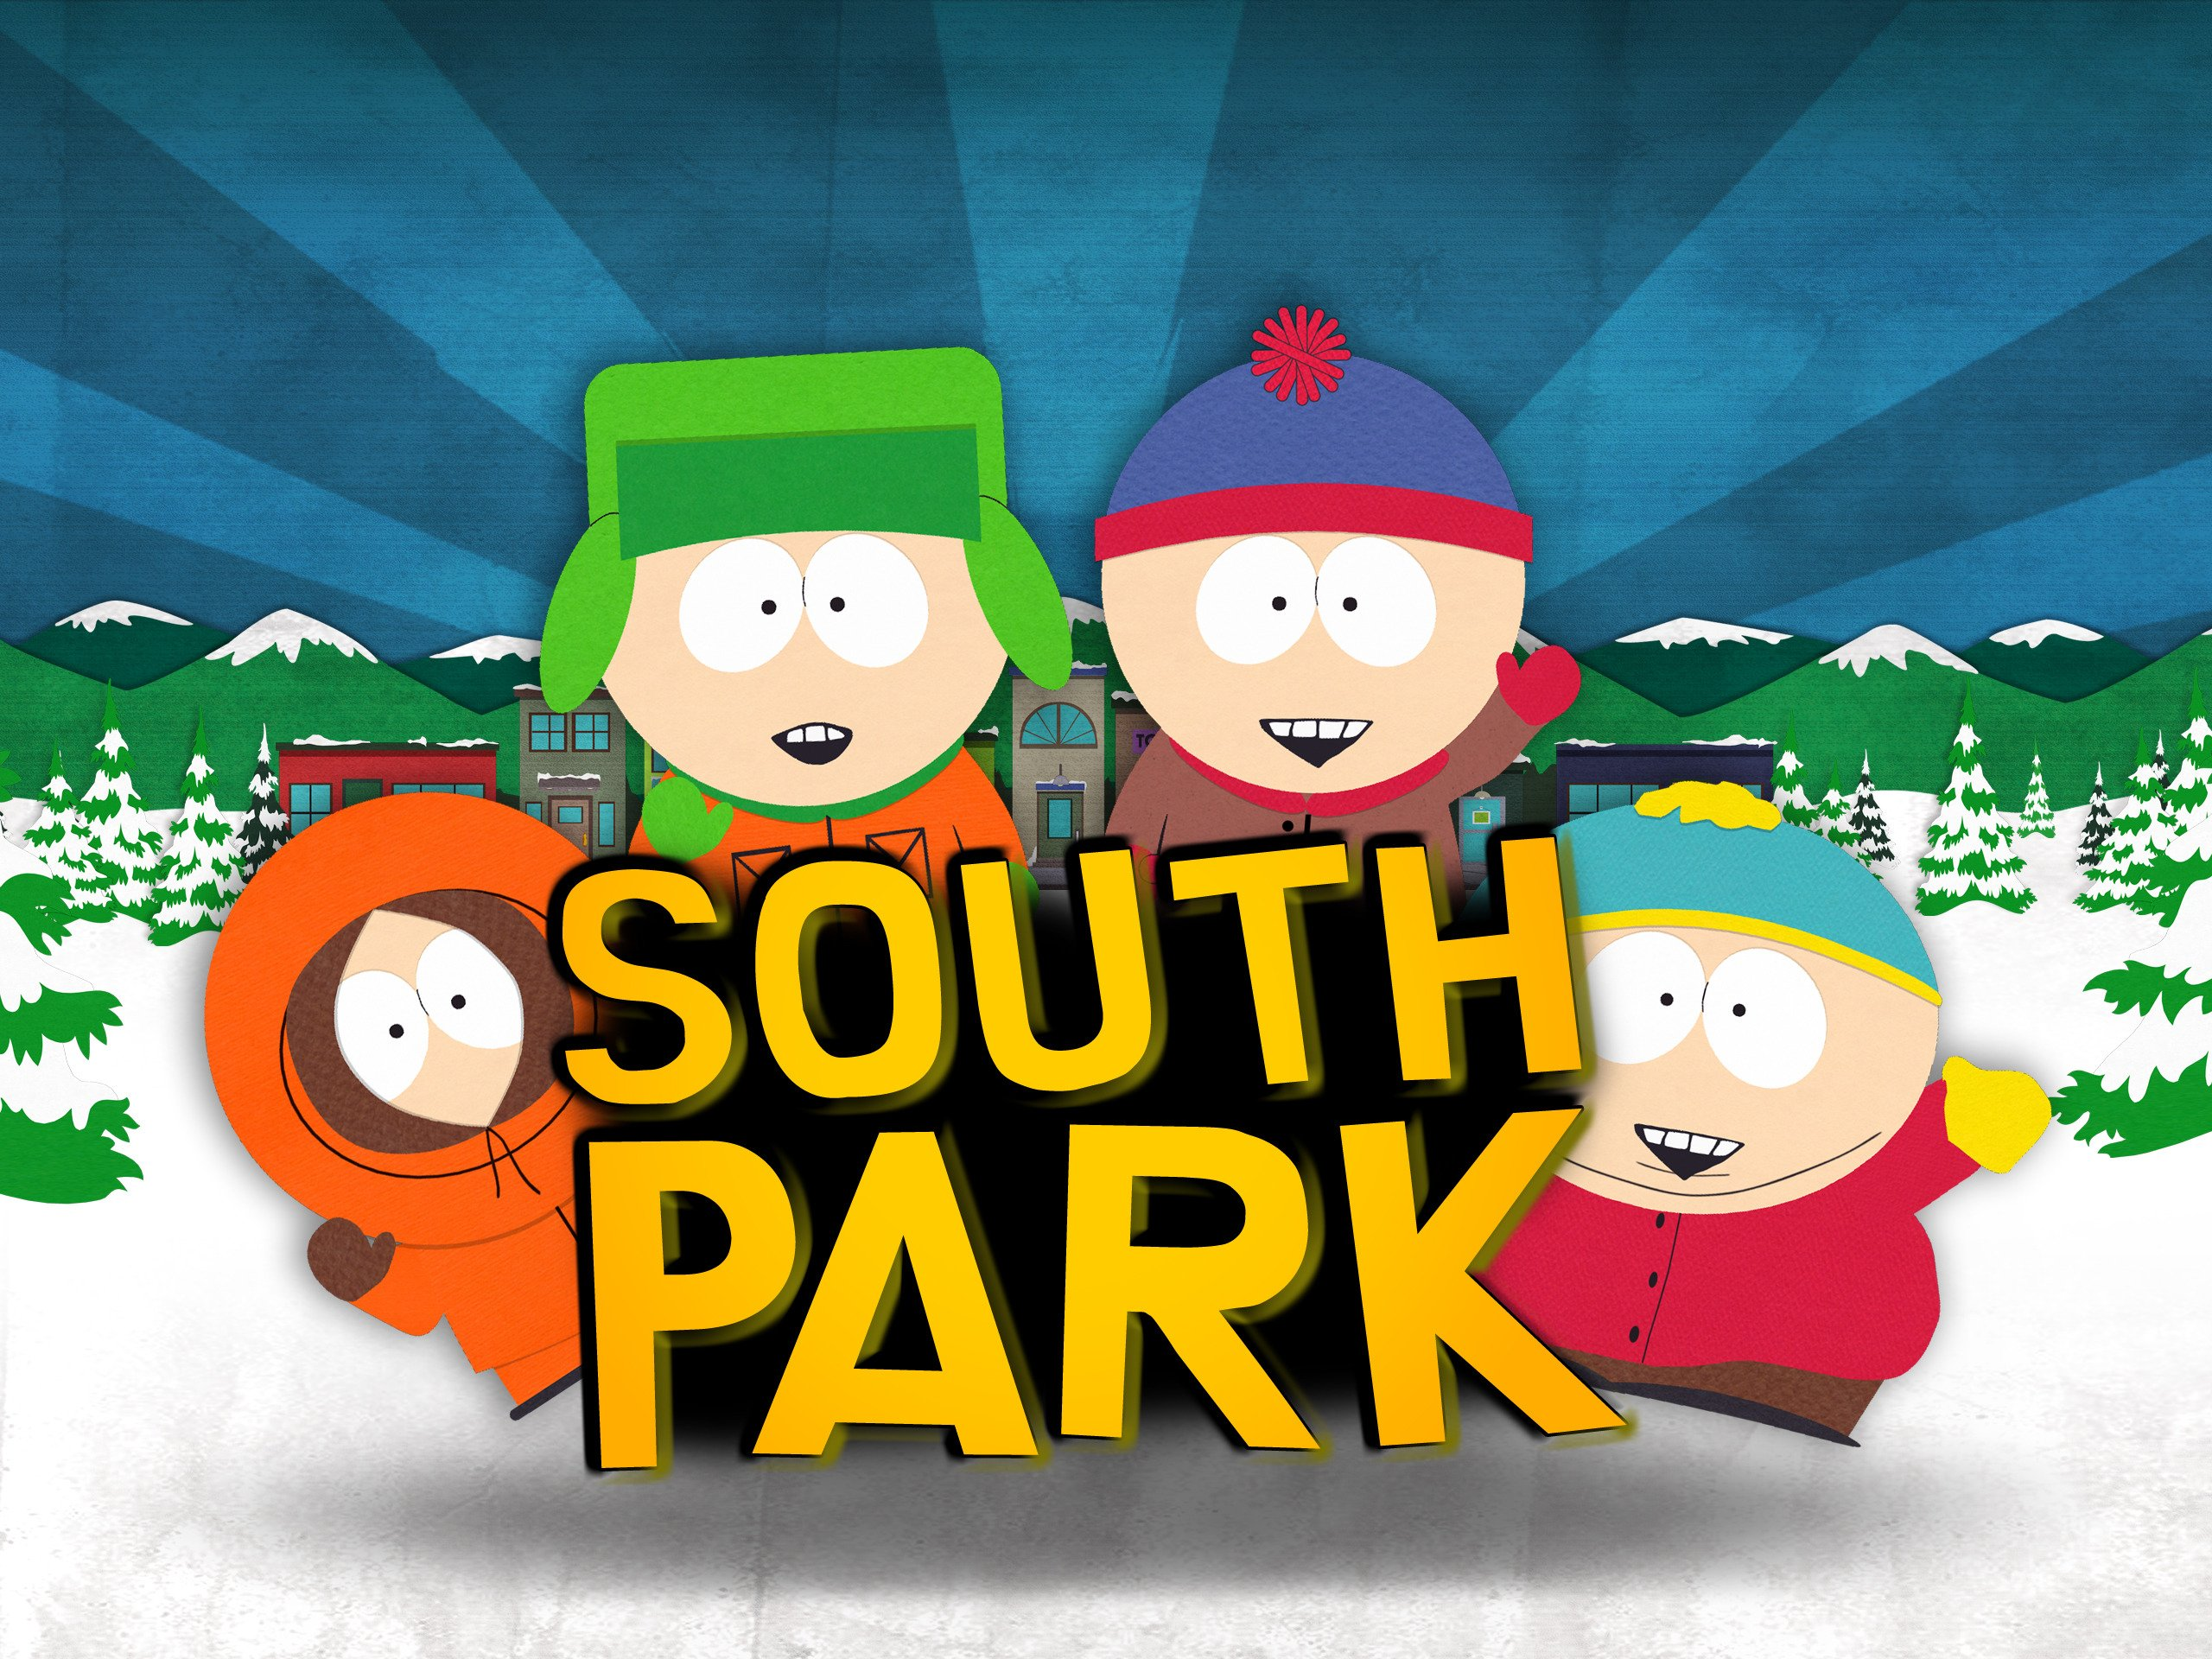 Amazon.com: Watch South Park Season 22 | Prime Video